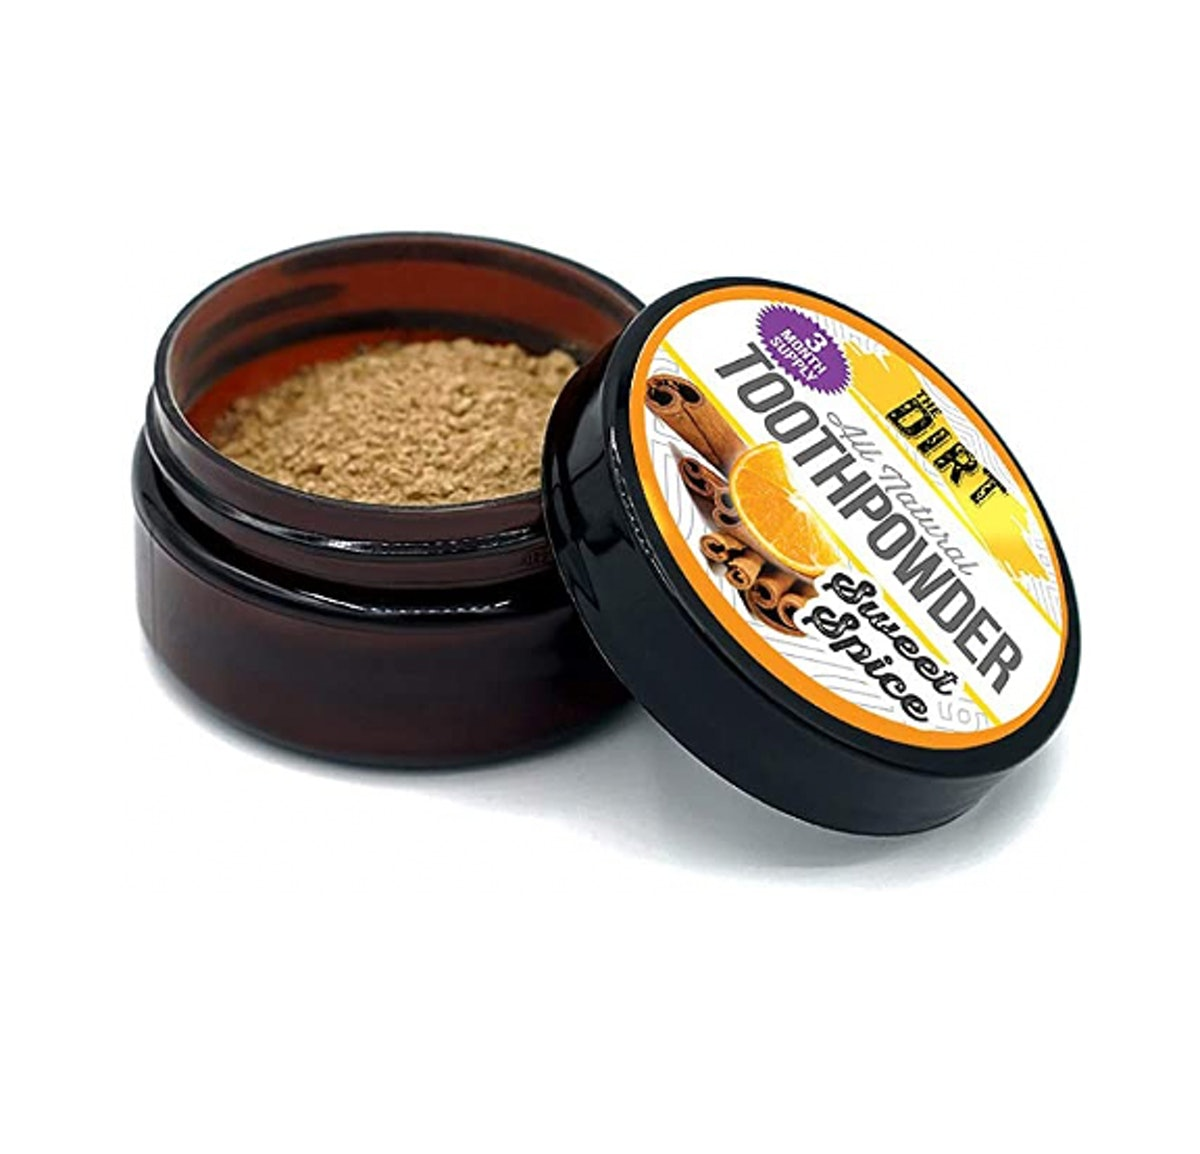 The Dirt All Natural Tooth Powder